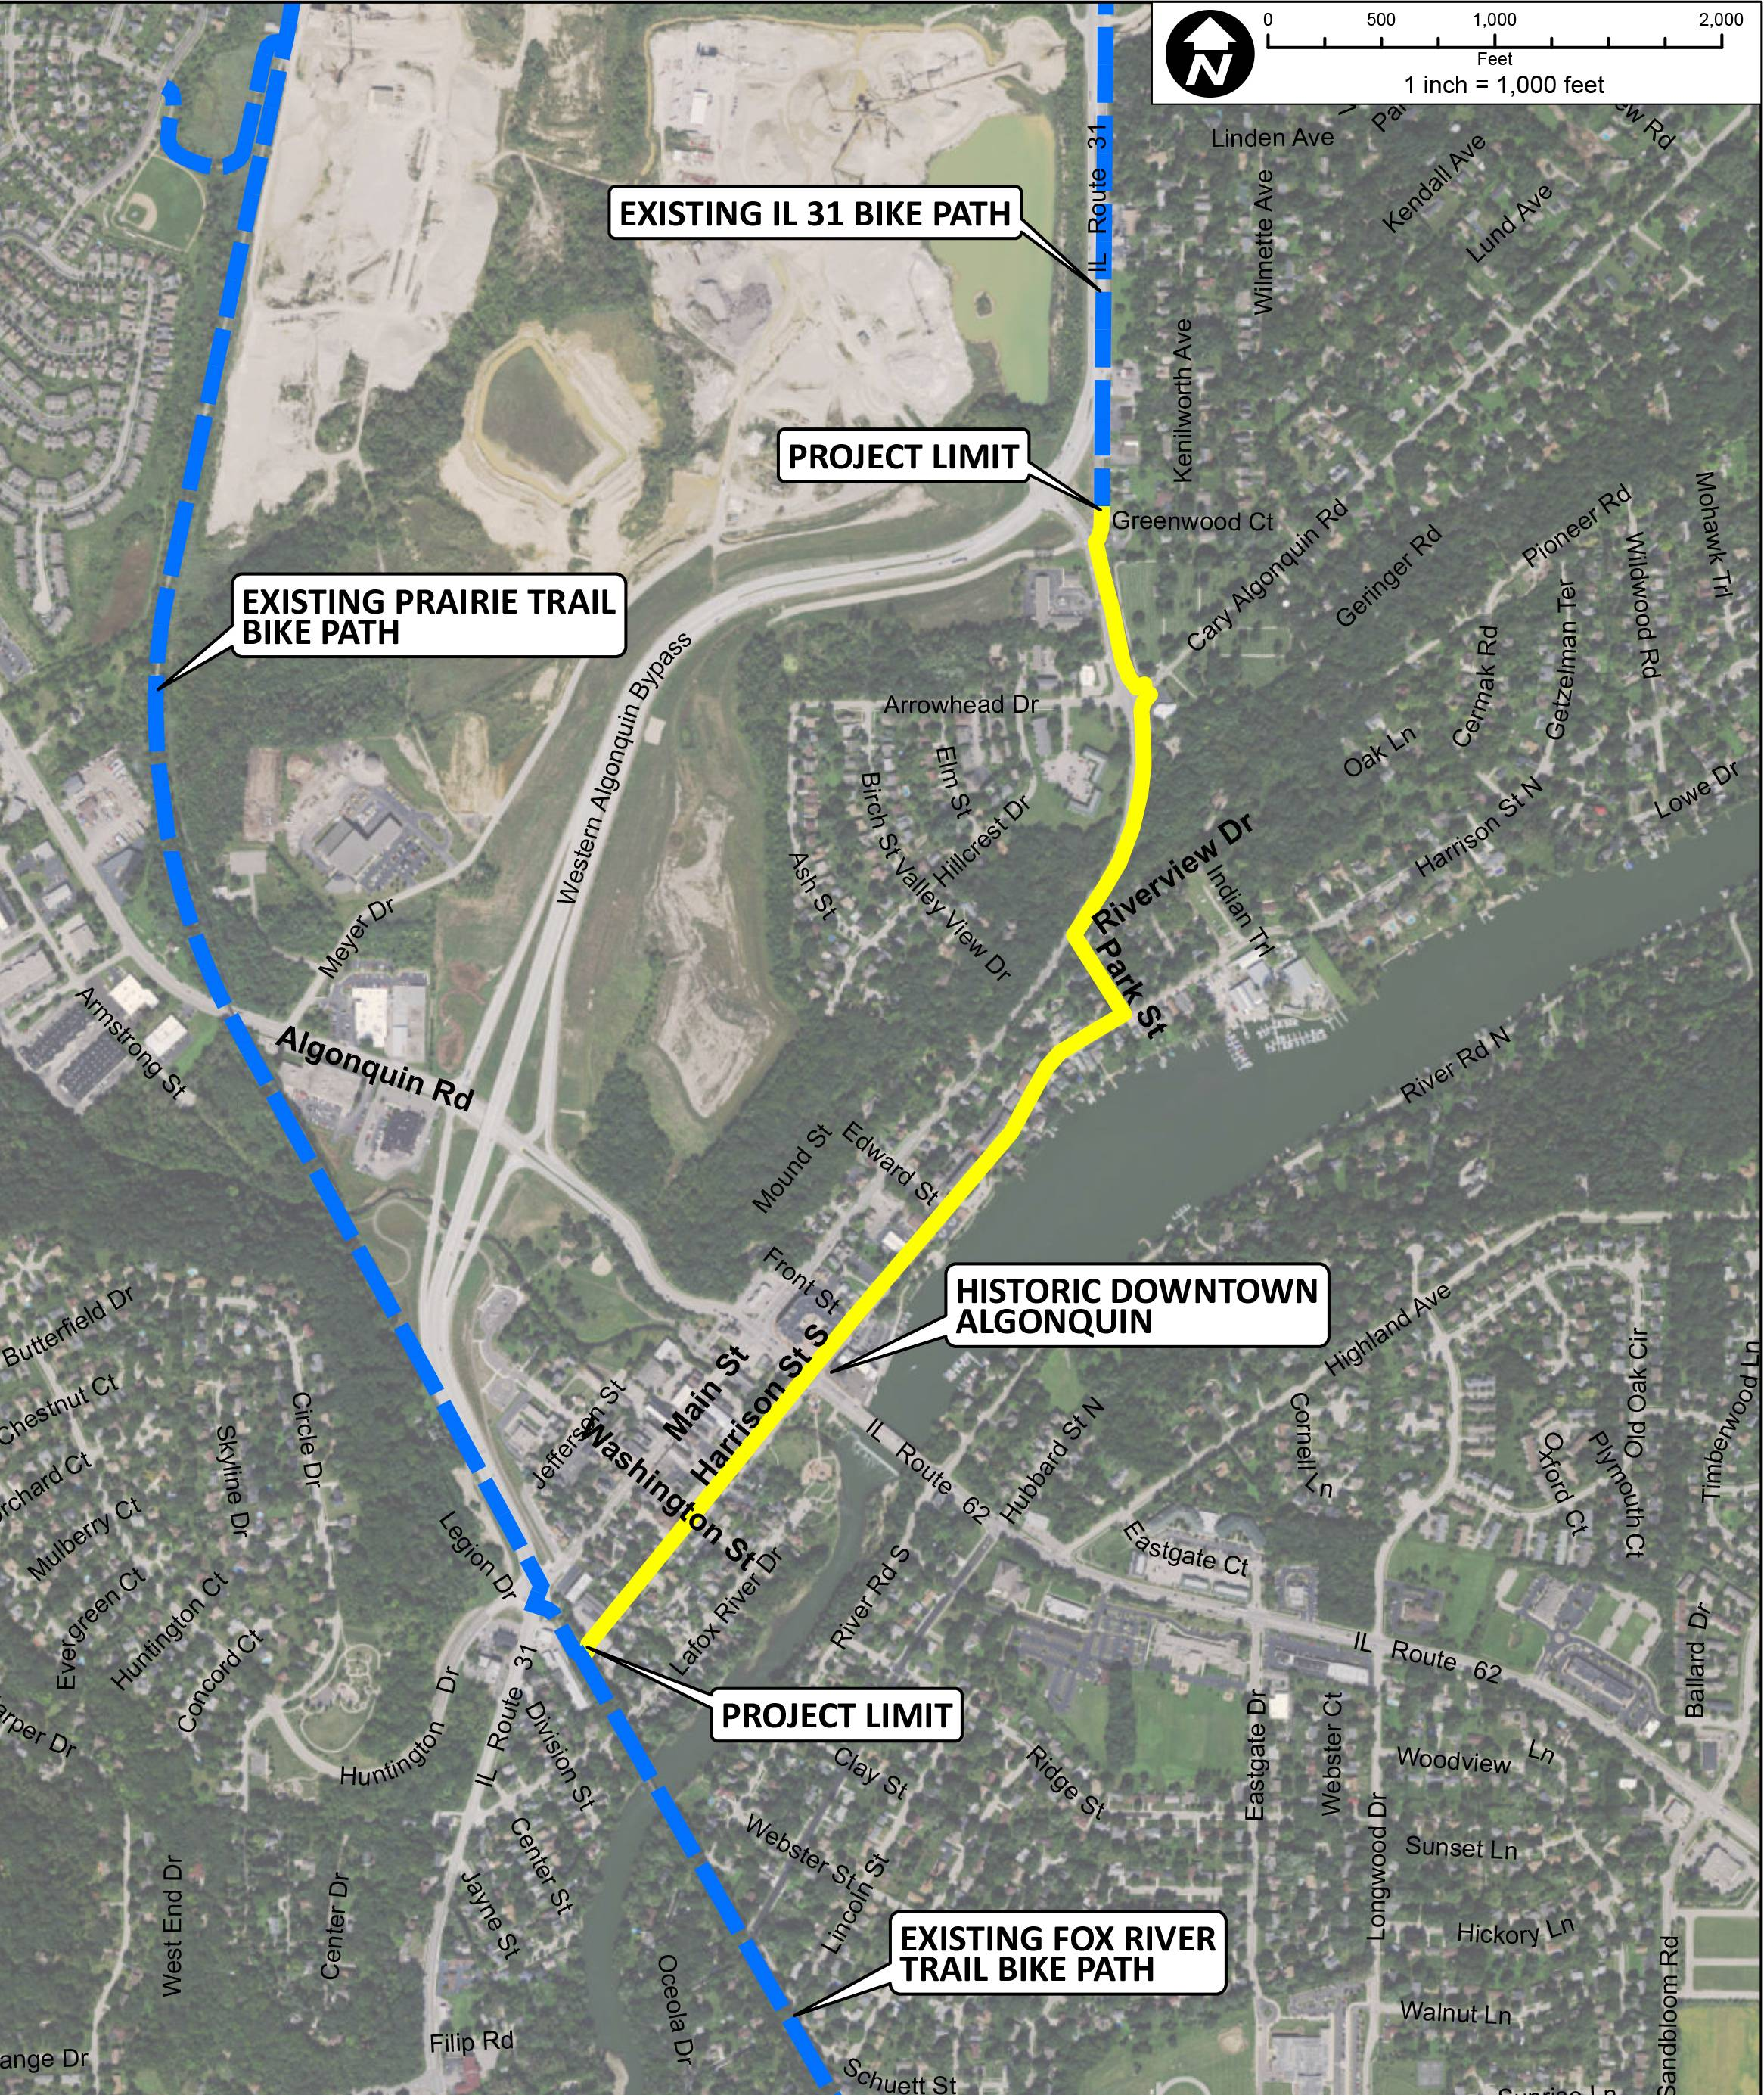 Algonquin plans to create a new $1.8 million bike path (outlined in yellow) that would run through its downtown district and connect two regional trails -- the Route 31 bike path and McHenry County's Prairie Trail.